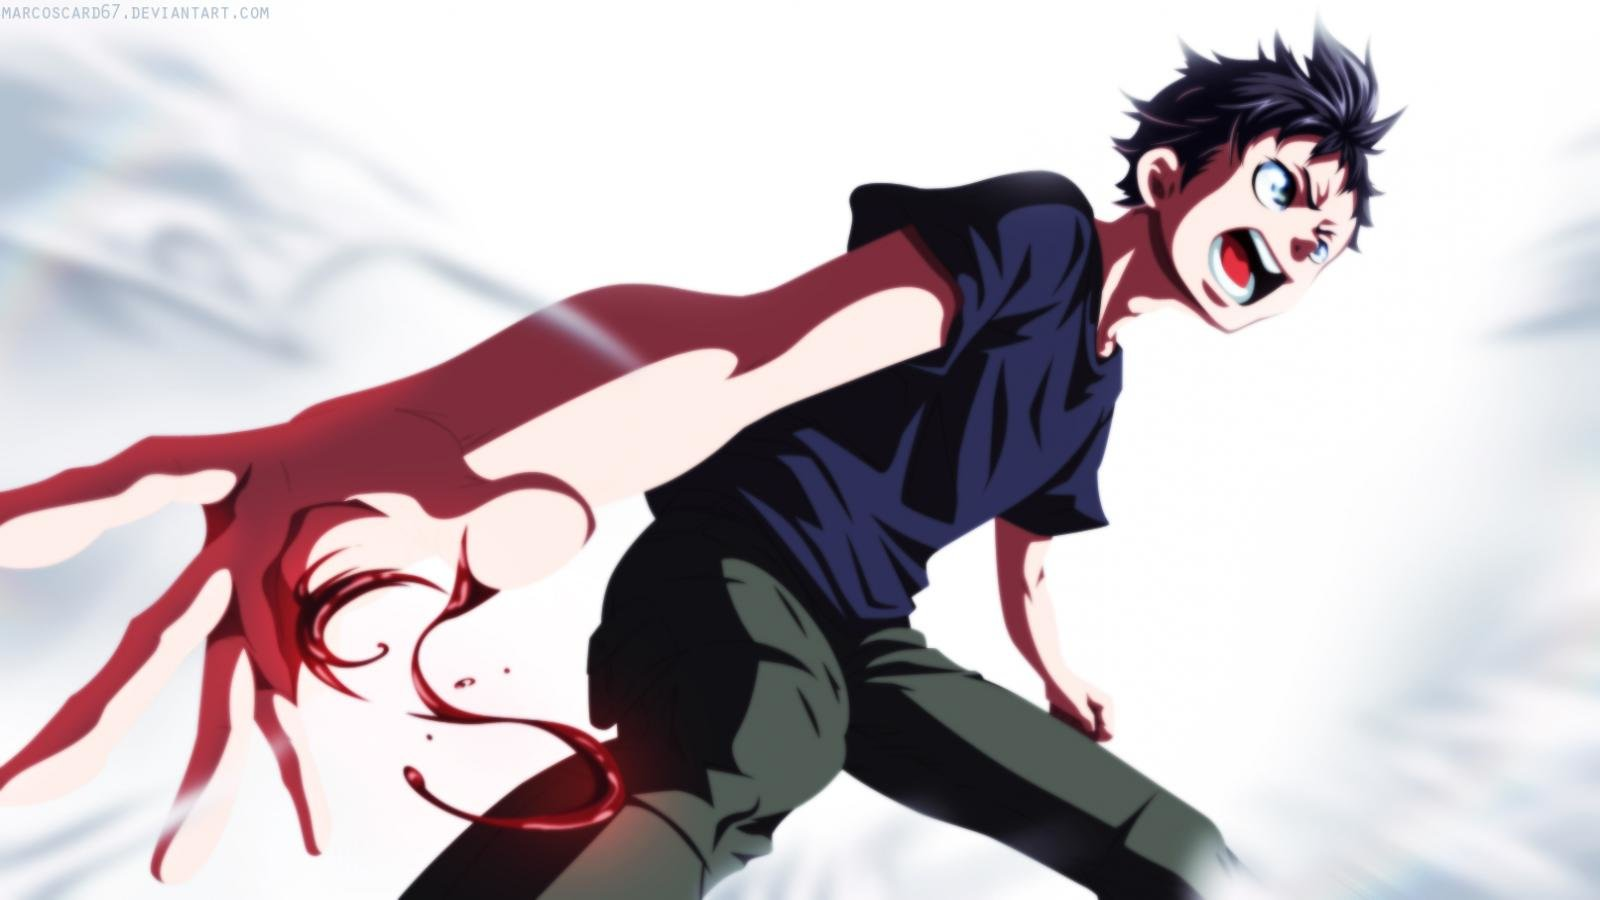 Download hd 1600x900 Ganta Igarashi desktop background ID:192076 for free